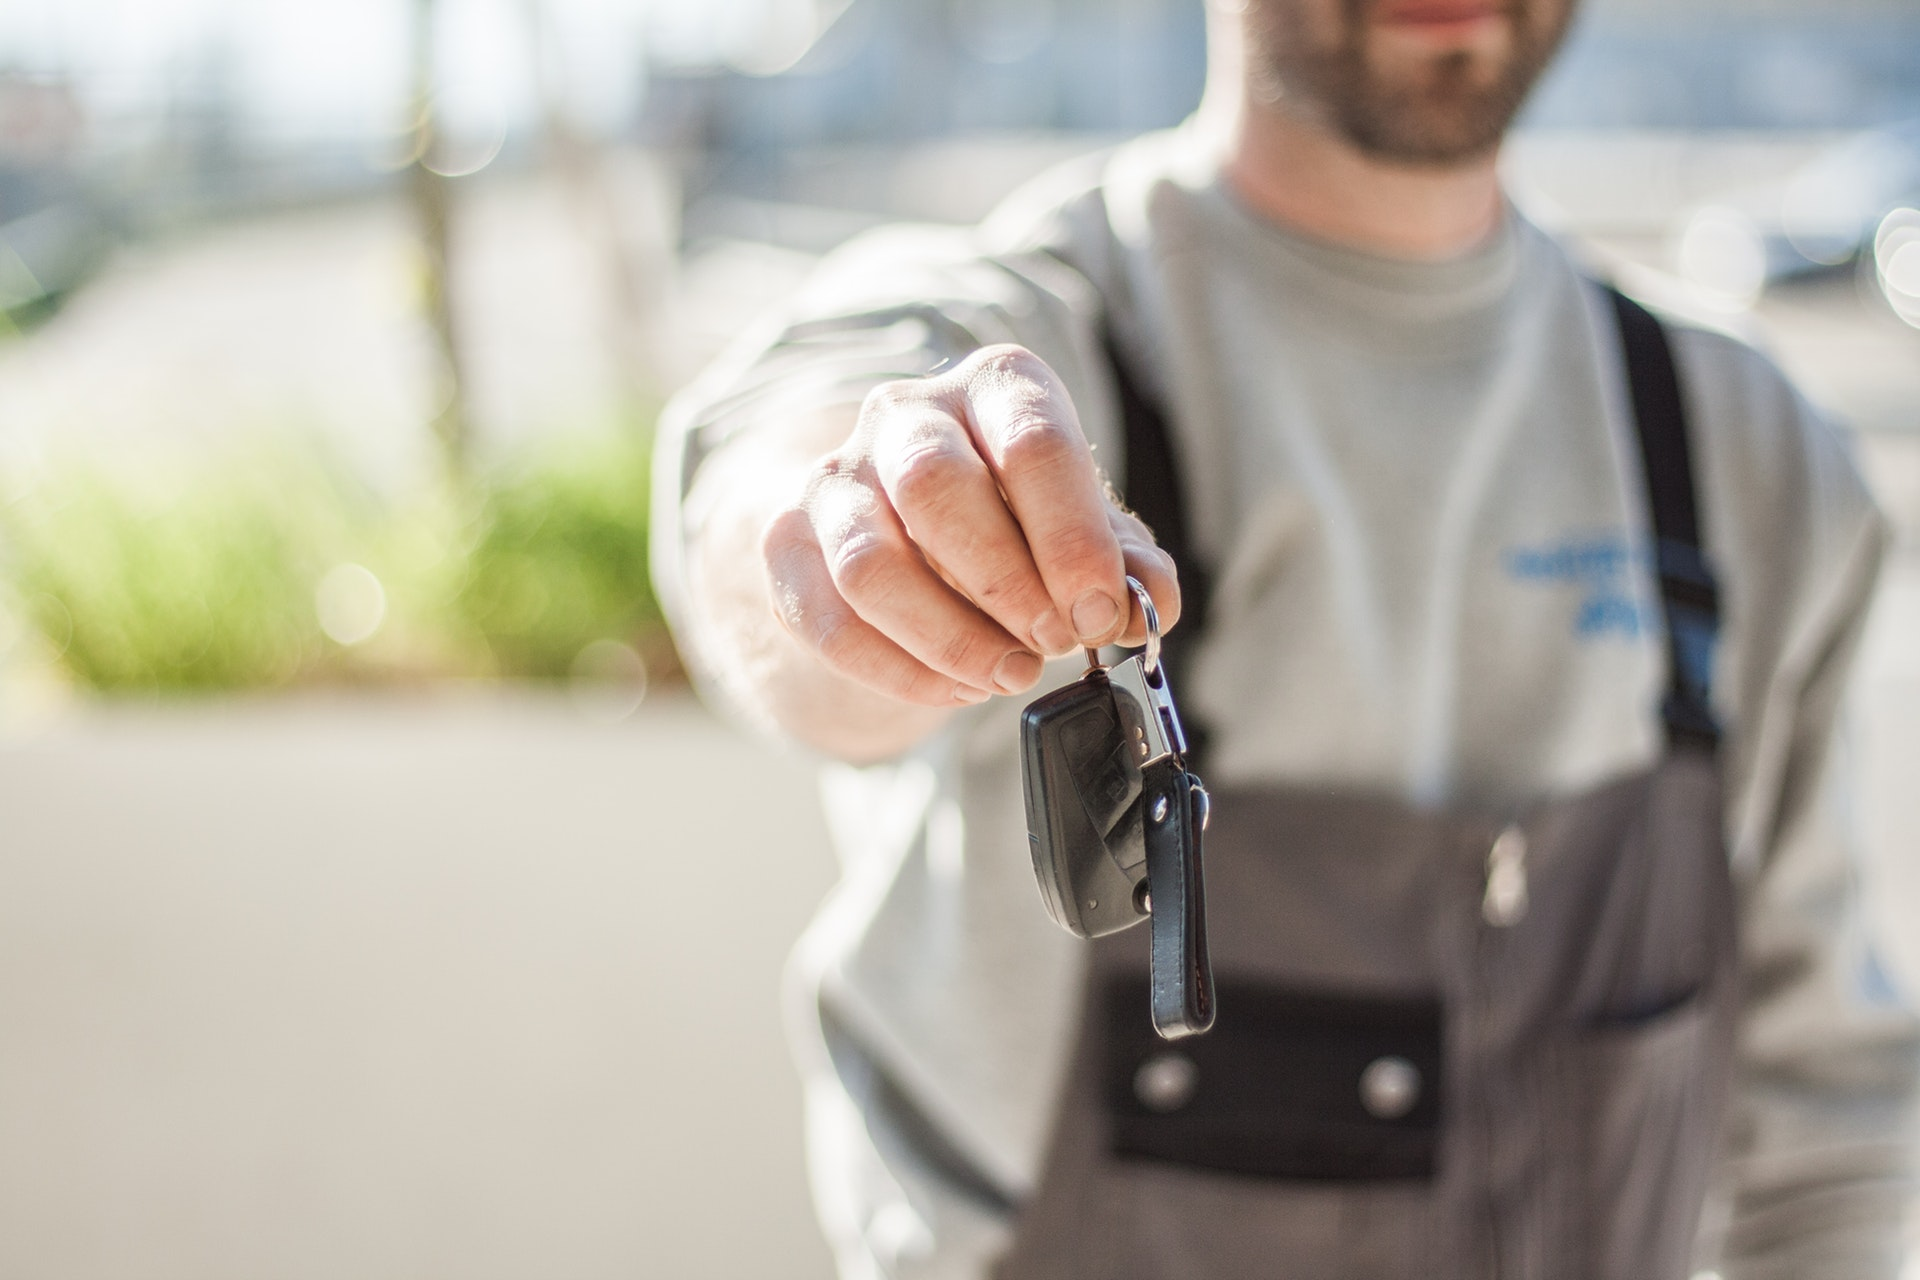 Car Rental - 4 Car Rental Tips You Should Know Before Renting One